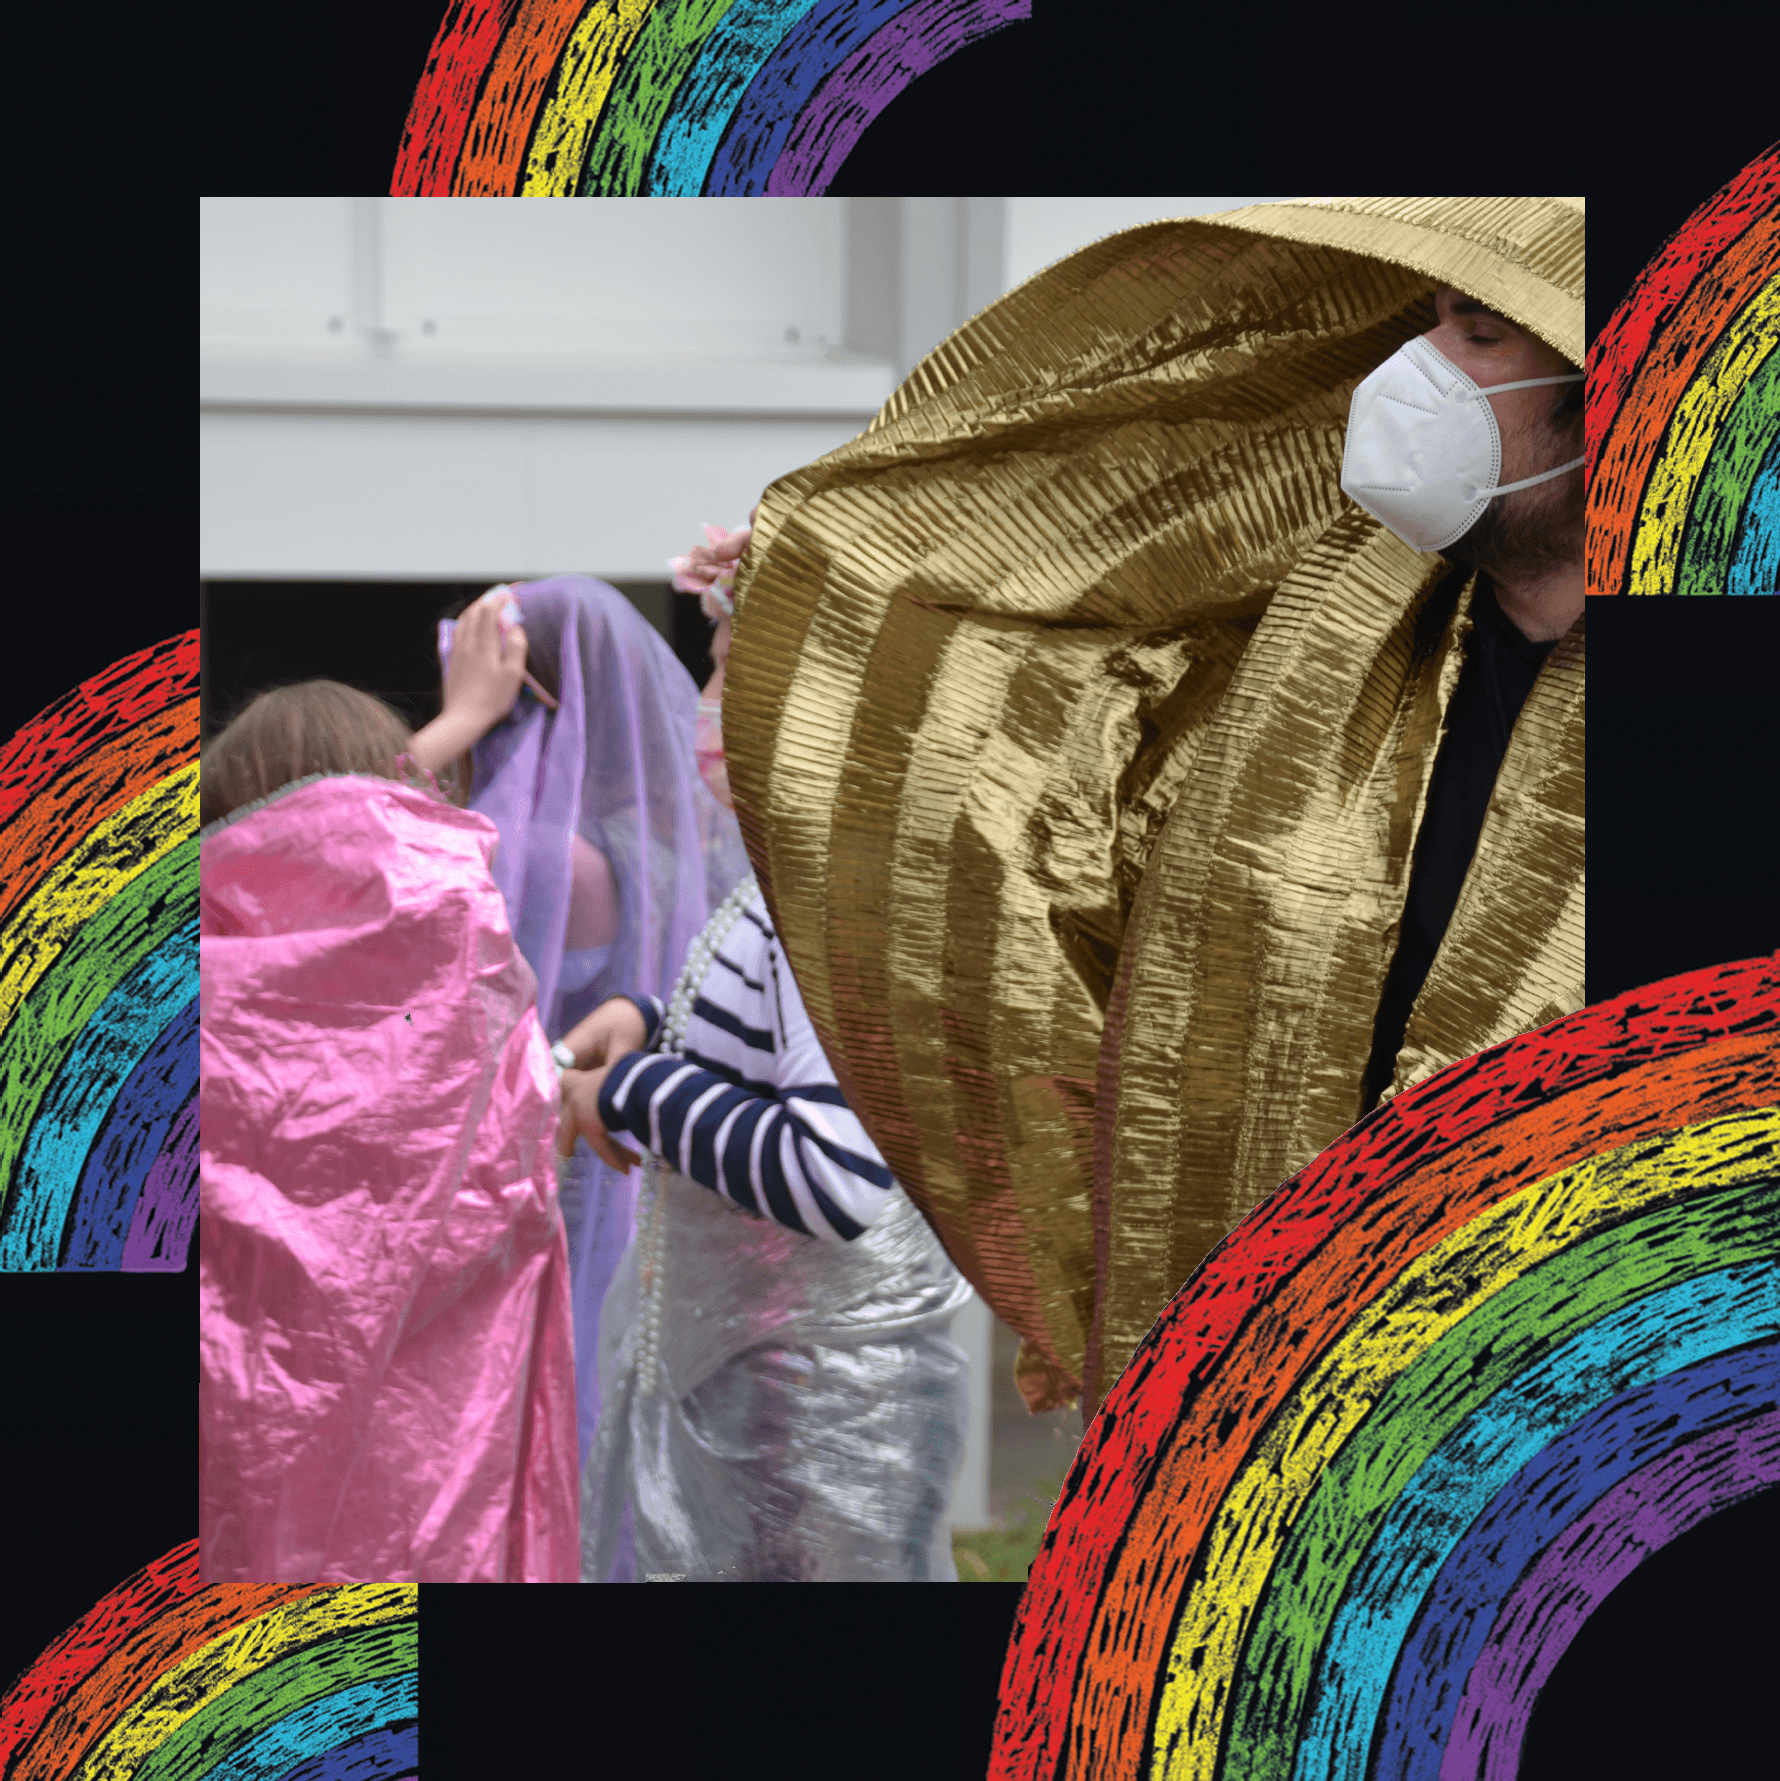 A photographic image of peoplewrapped in metallic fabric. The person nearest the camera is wearing gold fabric, and a white face mask - they are in profile. Four others can be seen in the background, wearing pink, purple and silver fabric, their heads turned away. The image sits on a black background with rainbow illustrations